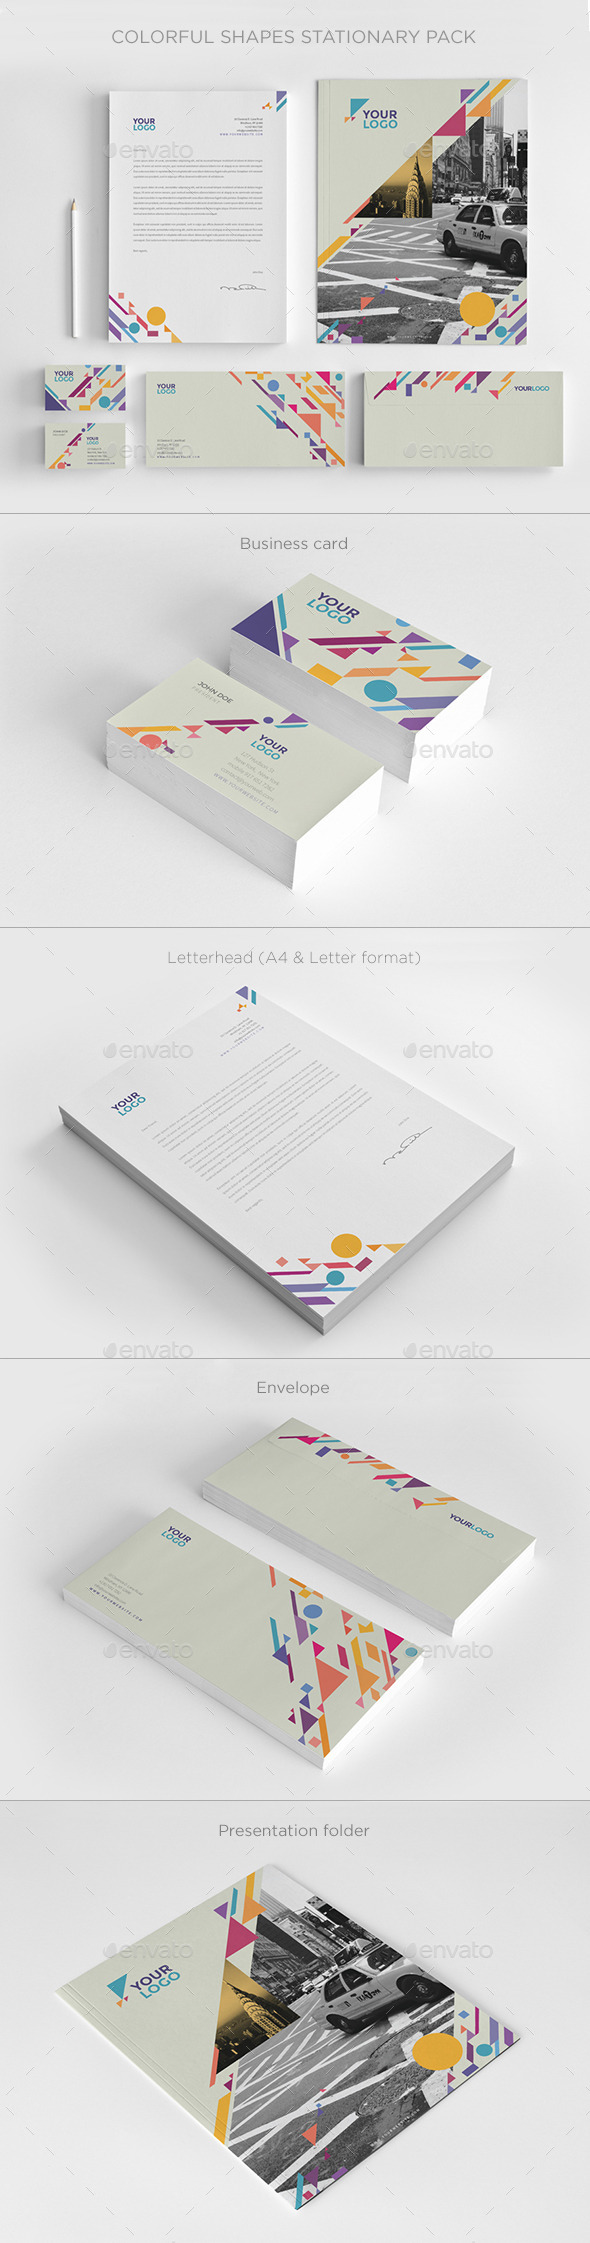 Colorful Shapes Stationery - Stationery Print Templates